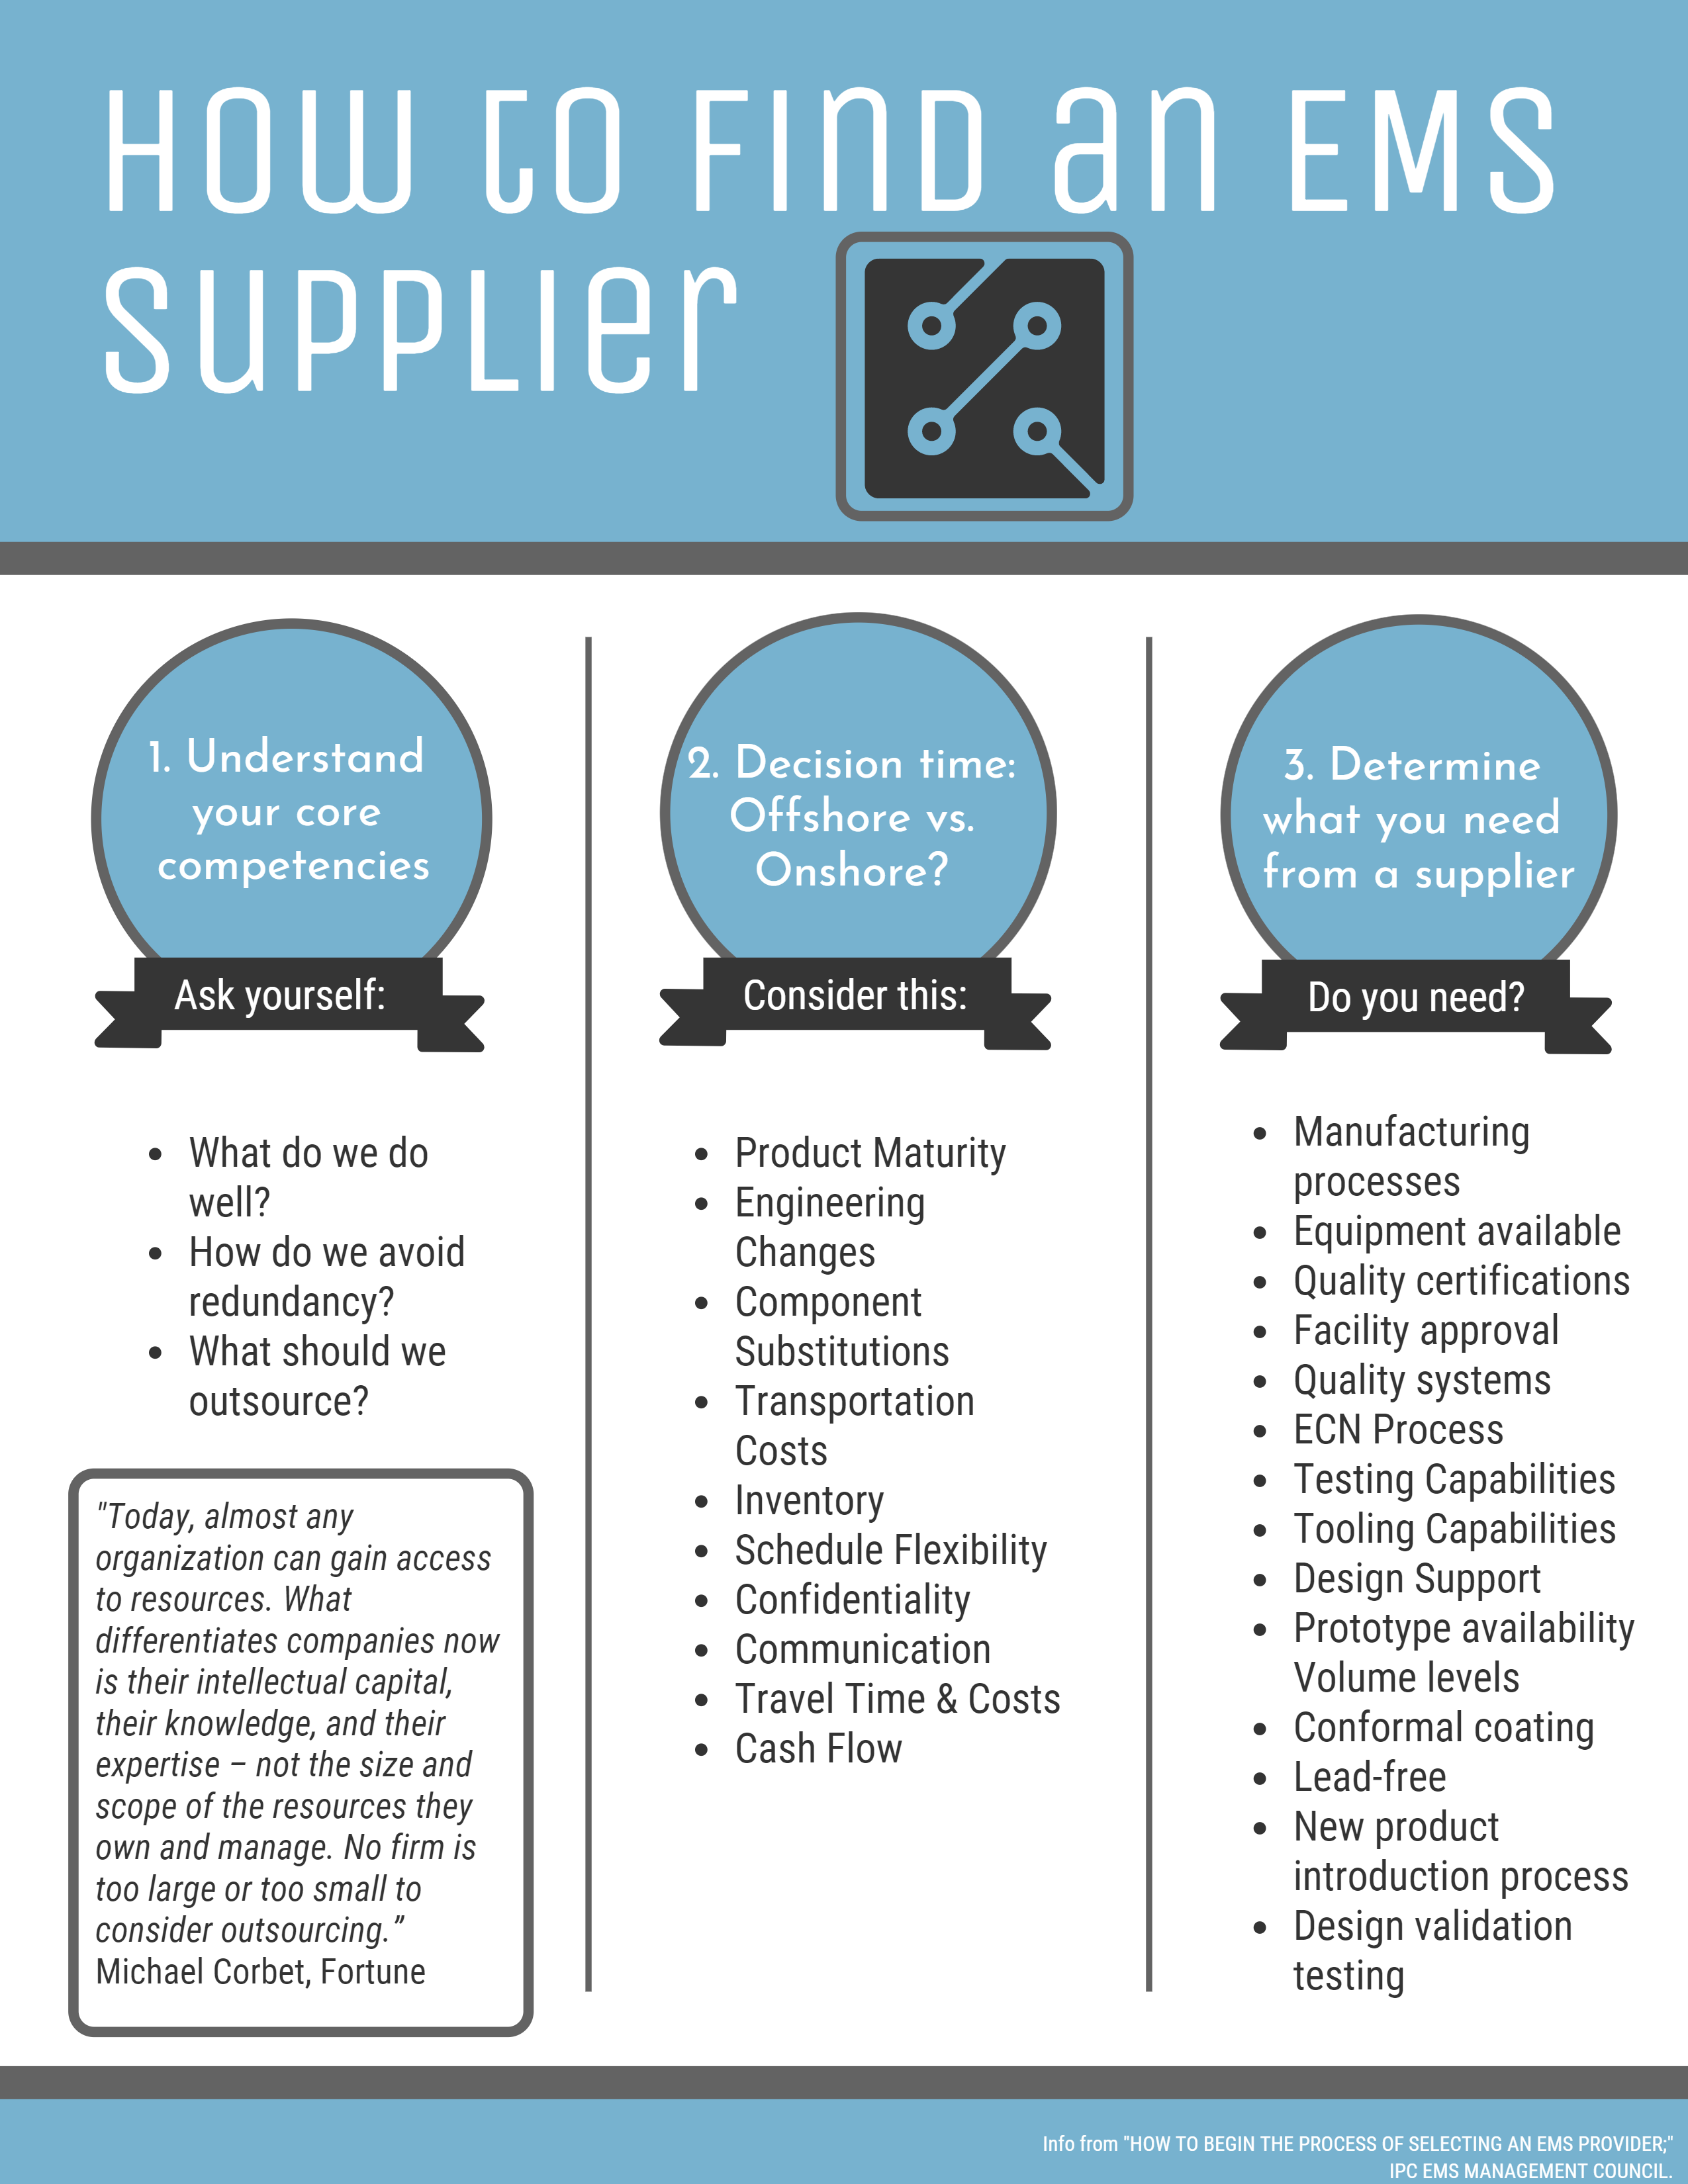 Finding-an-EMS-Supplier-East-West-MFG.png